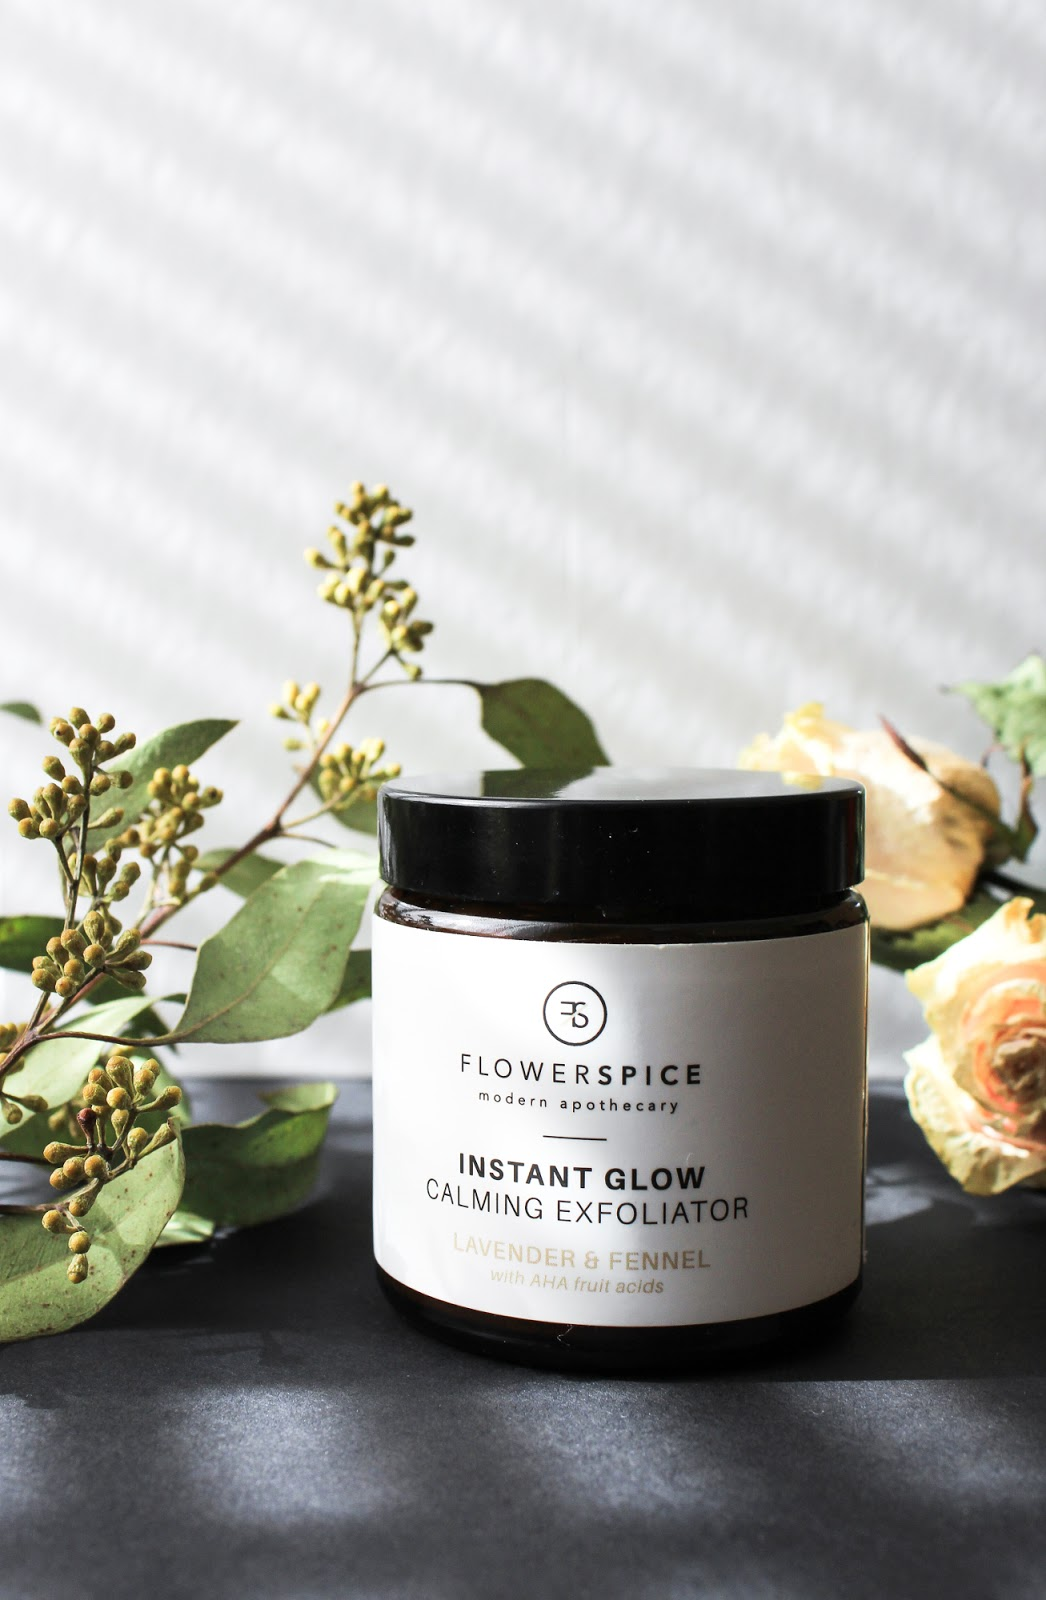 Flower and Spice Instant Glow Calming Exfoliator Lavender and Fennel with AHA fruit acids